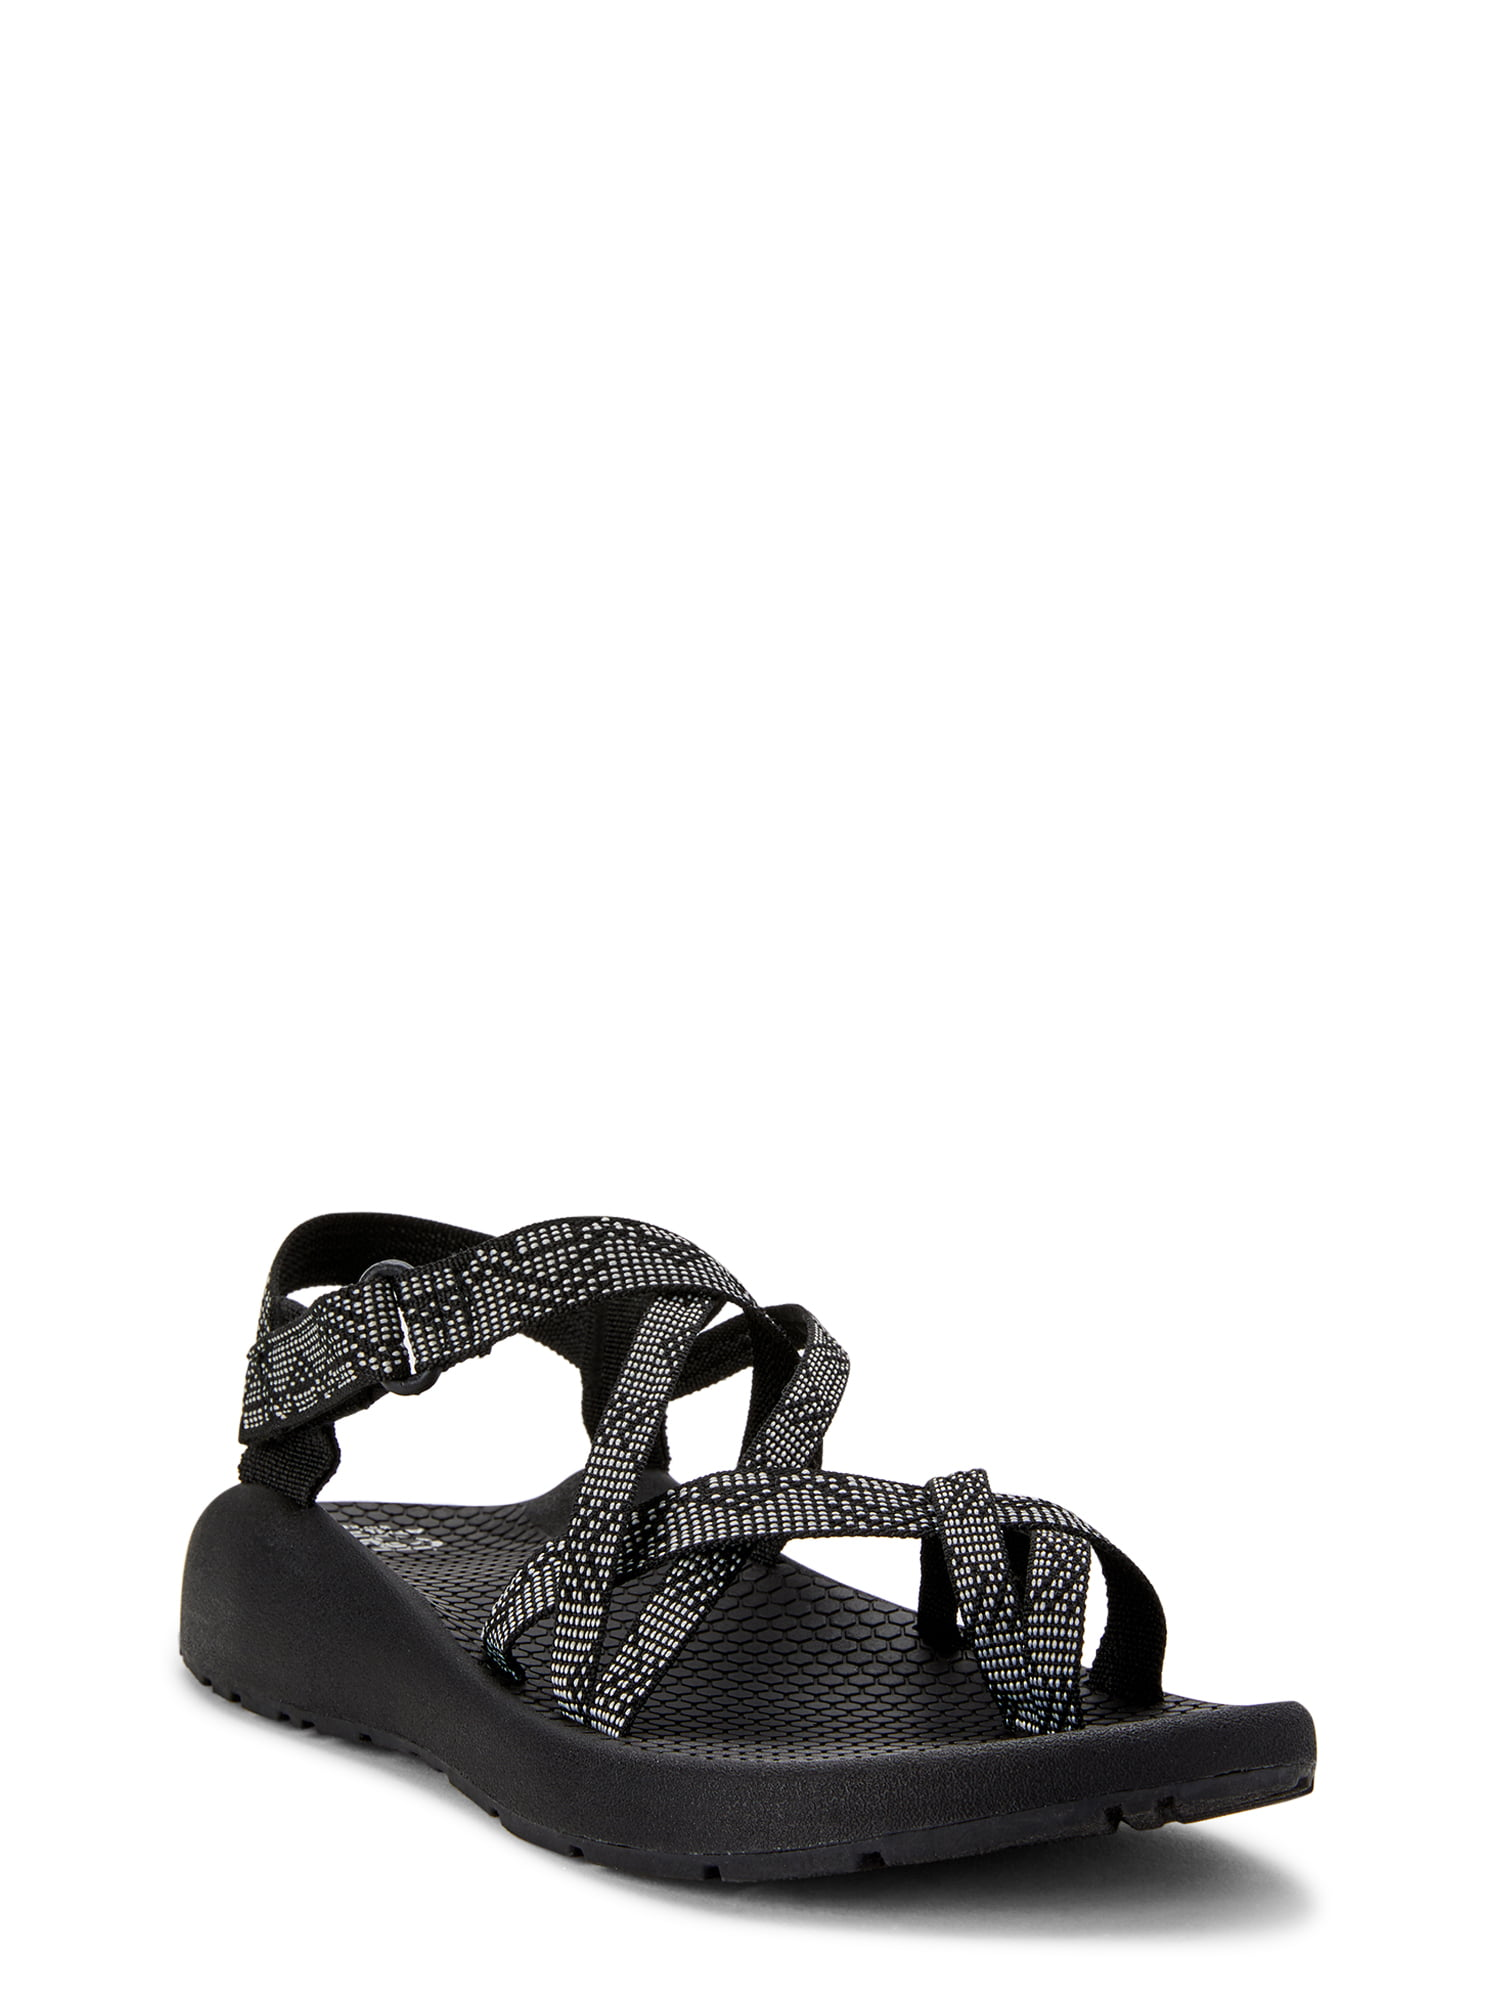 Athletic Works Women's Strappy Sandals